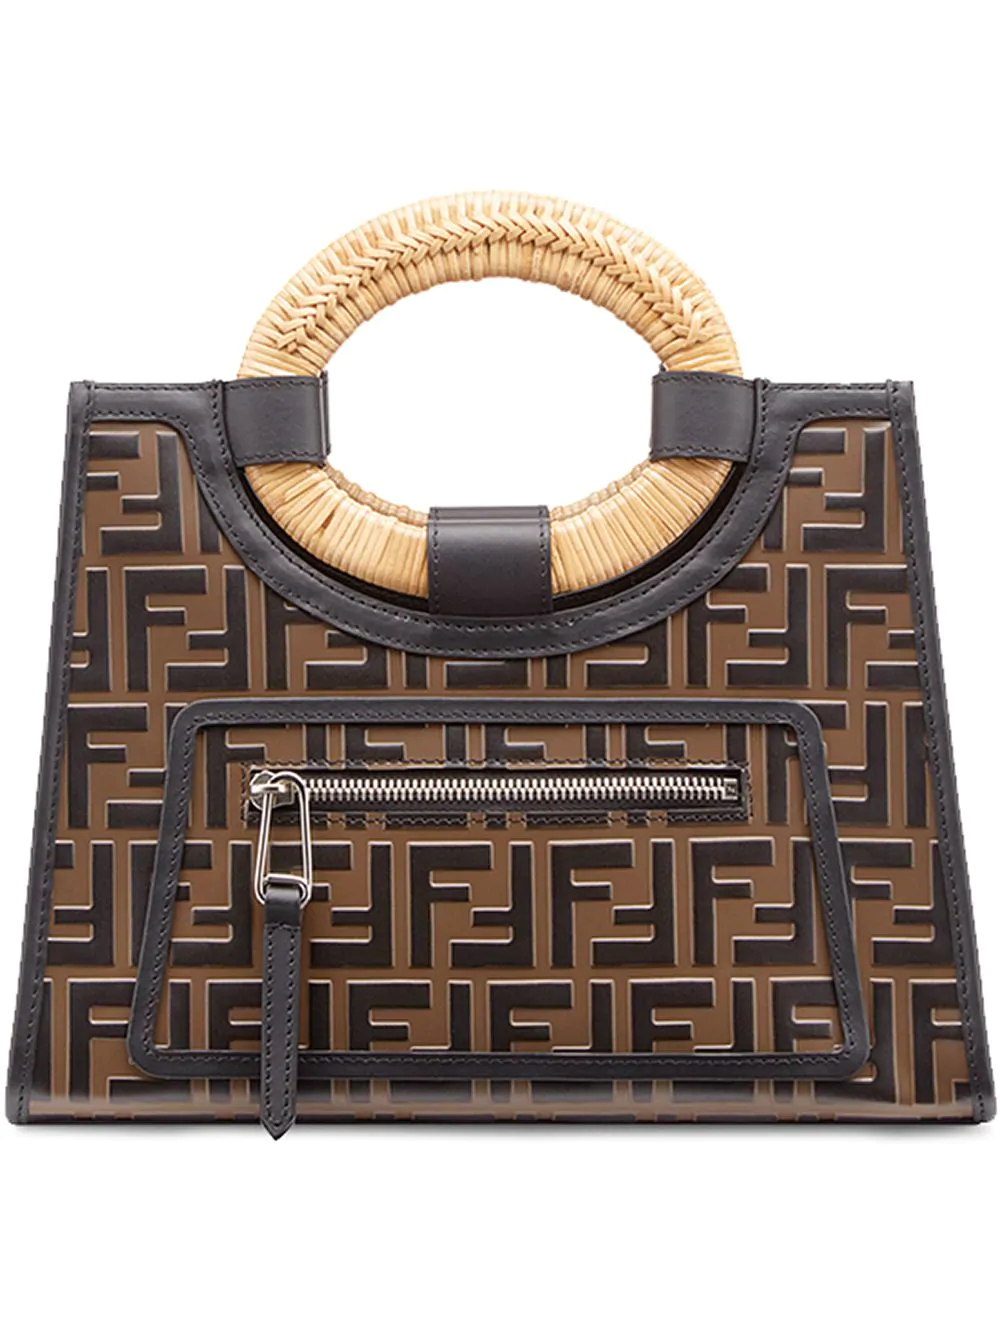 ca3fa0263cf8 Fendi Runaway Small Ff Embossed Calf Shopping Tote Bag In Brown ...